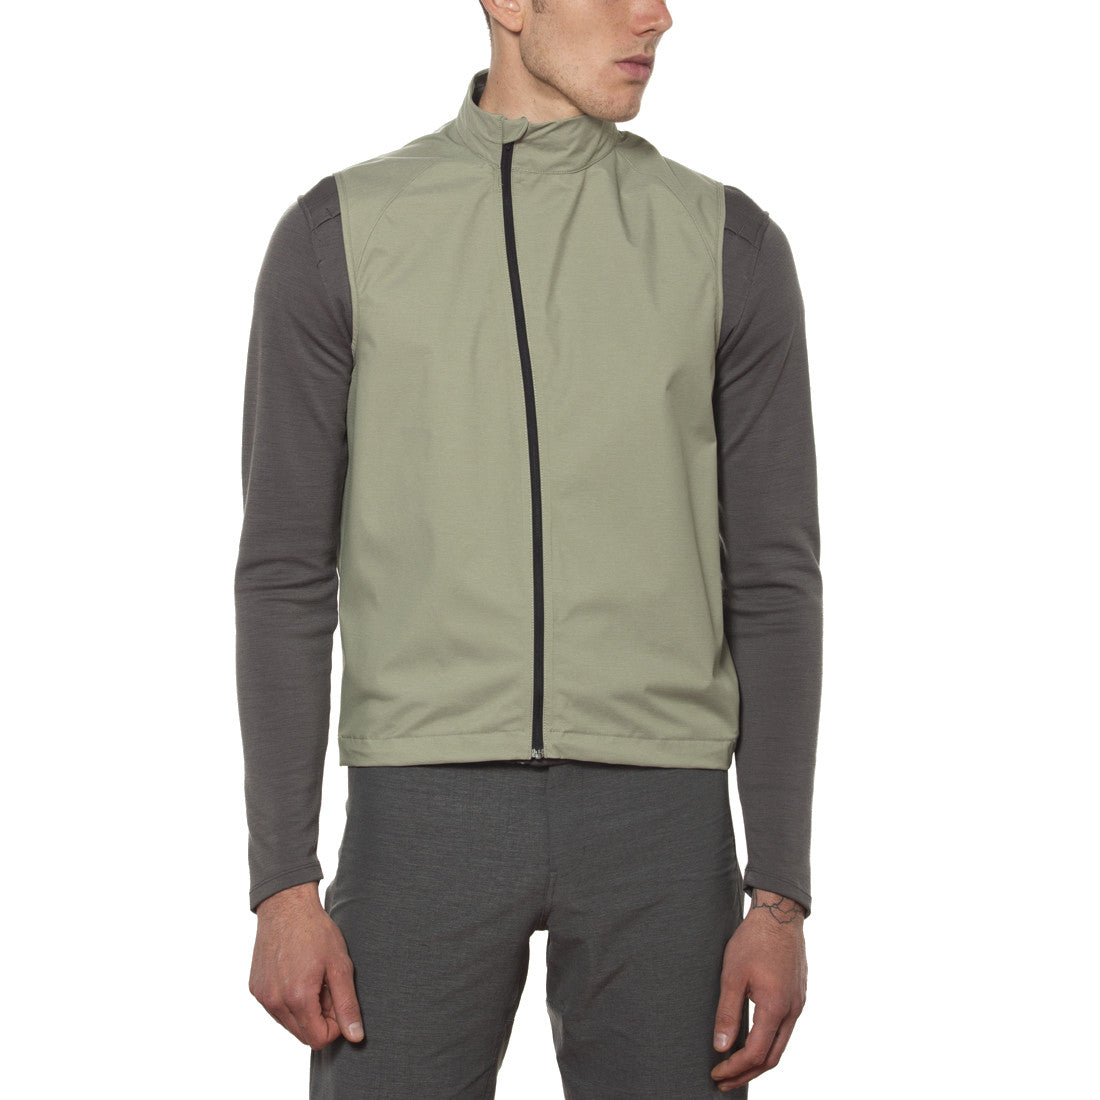 Giro Men's Wind Vest Green - Medium, Grey - Racer Sportif